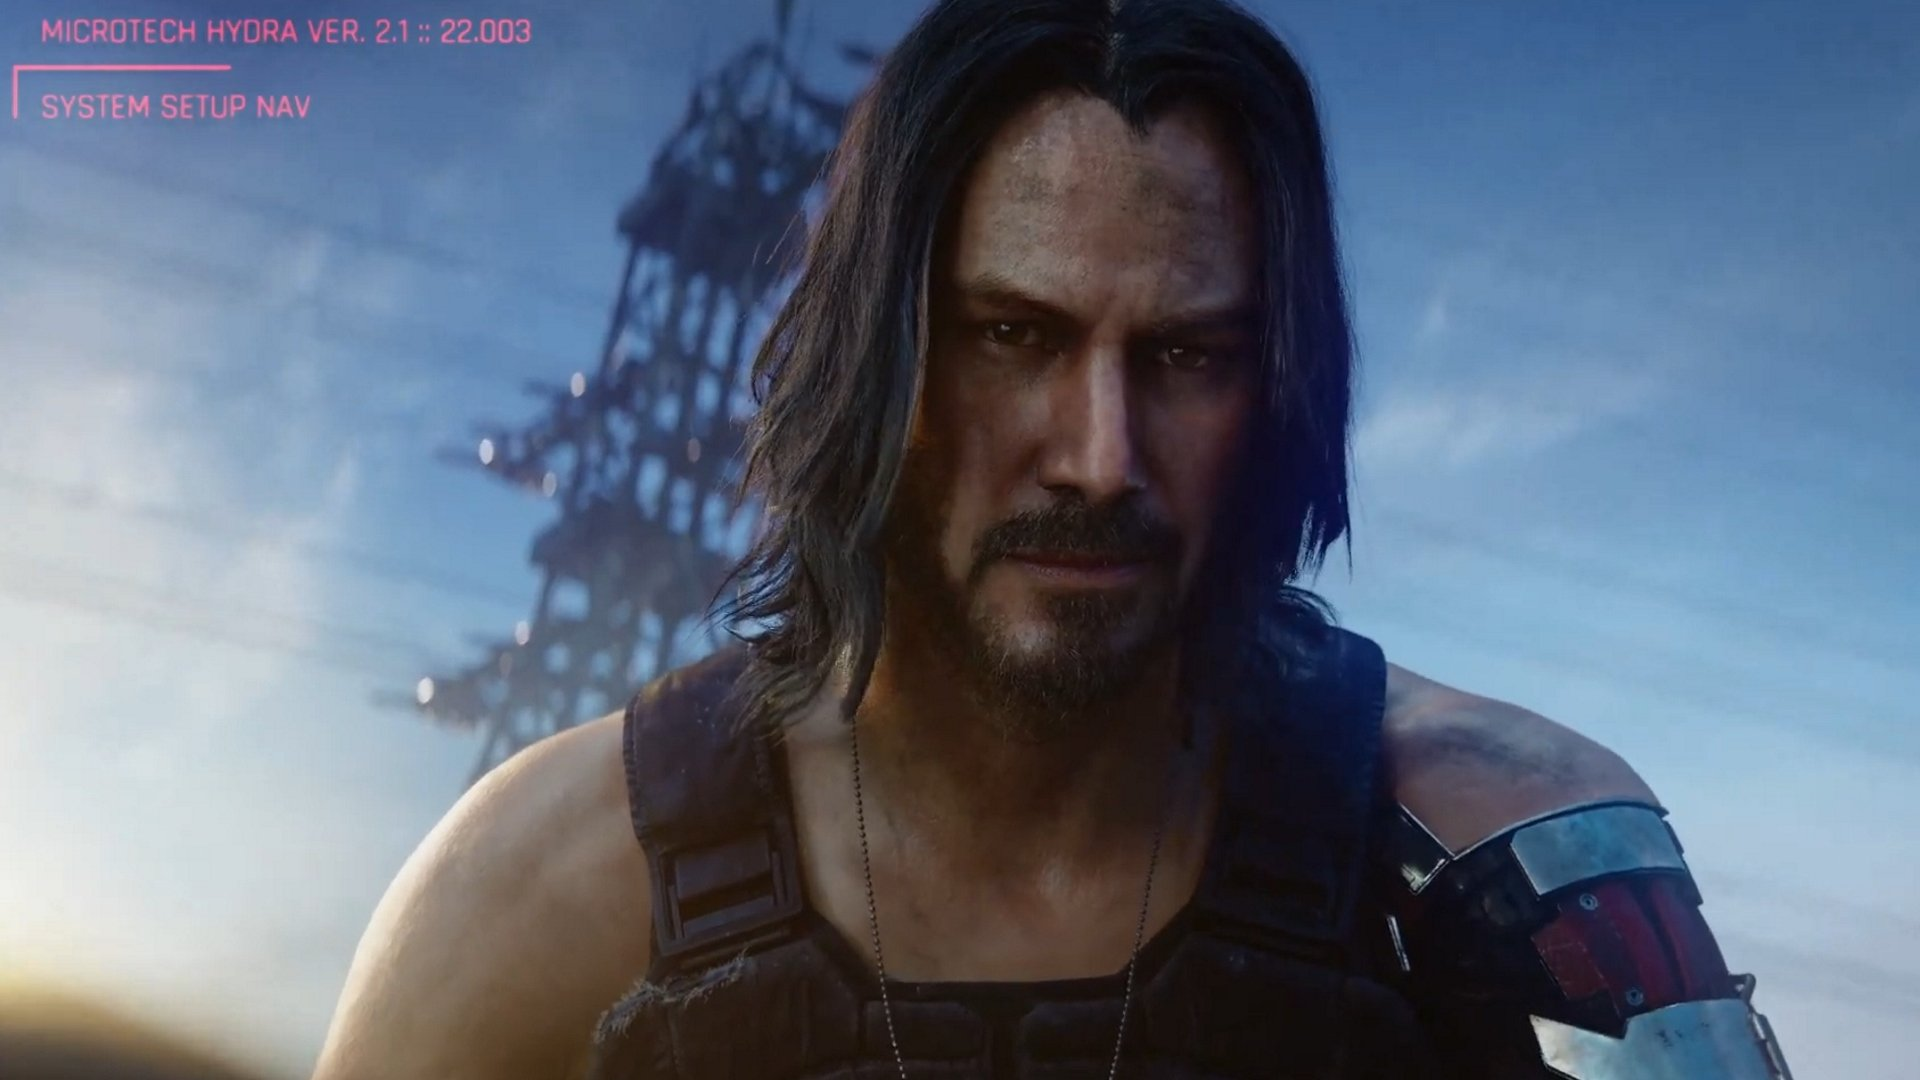 The Biggest Surprises of E3 2019